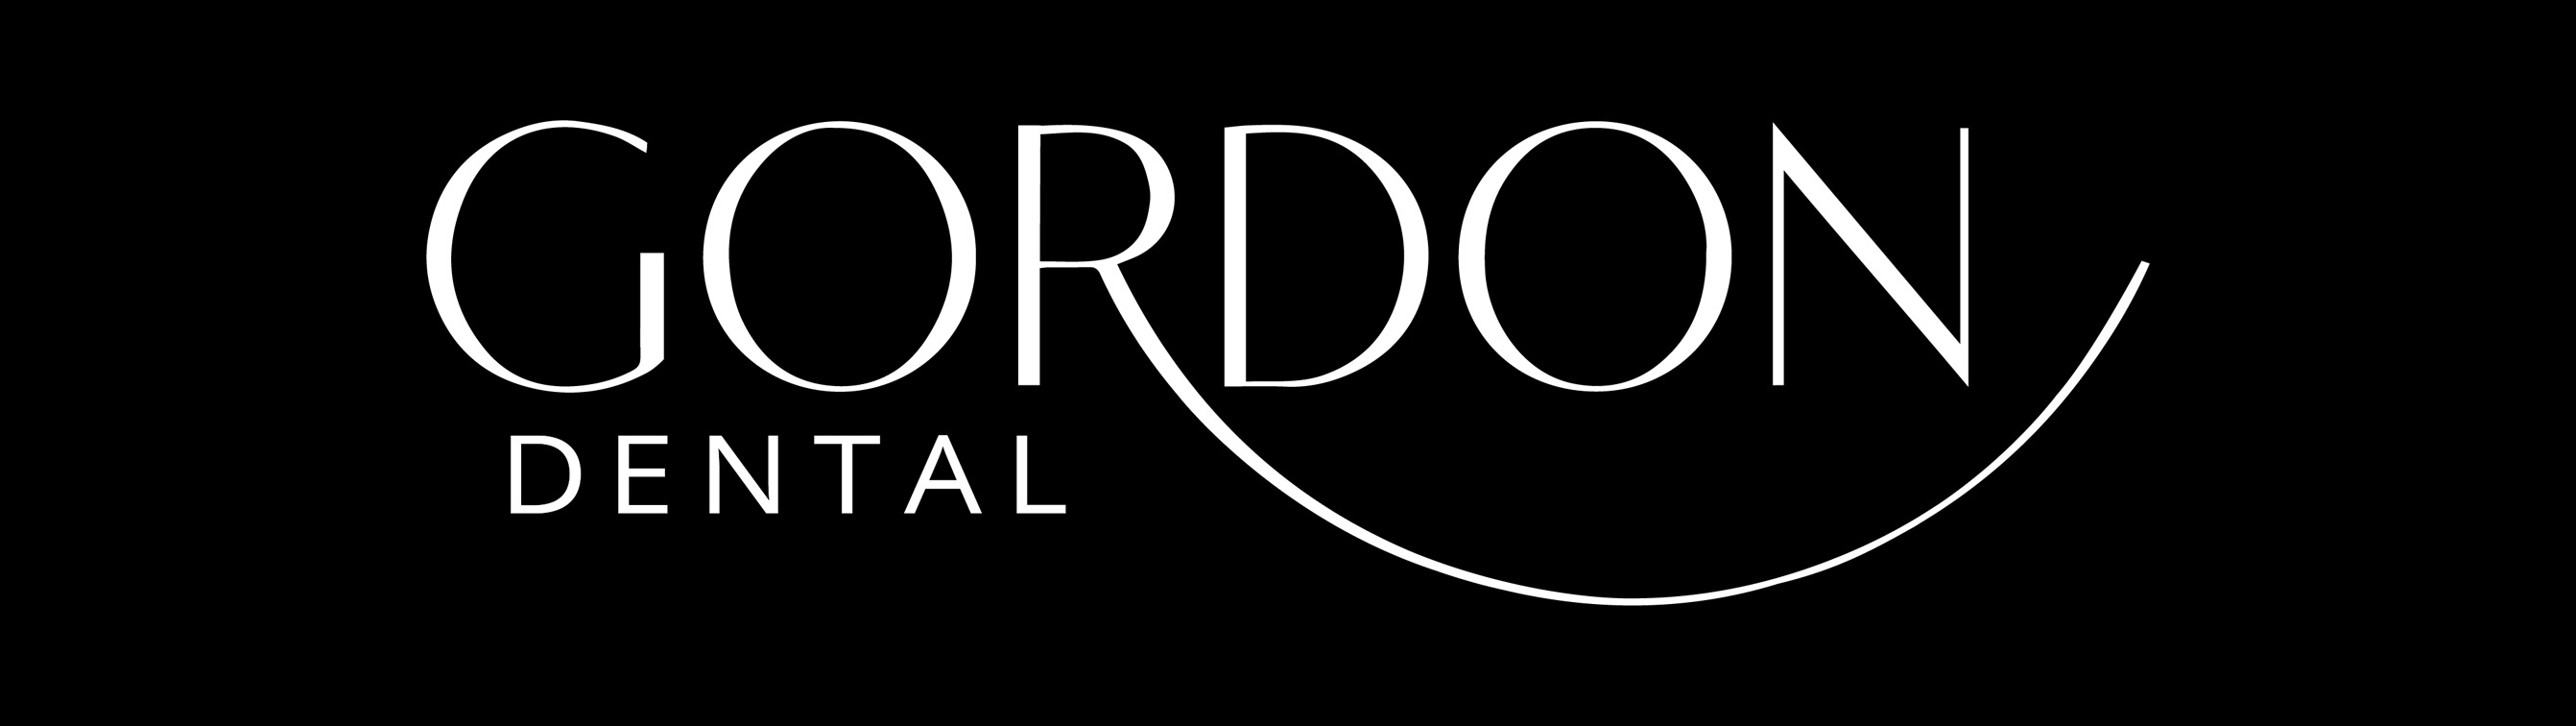 Gordon Dental Comprises a Cosmetic Dentist in Kansas City, MO, Offering Cosmetic Dentistry and Complete Smile Makeover Services